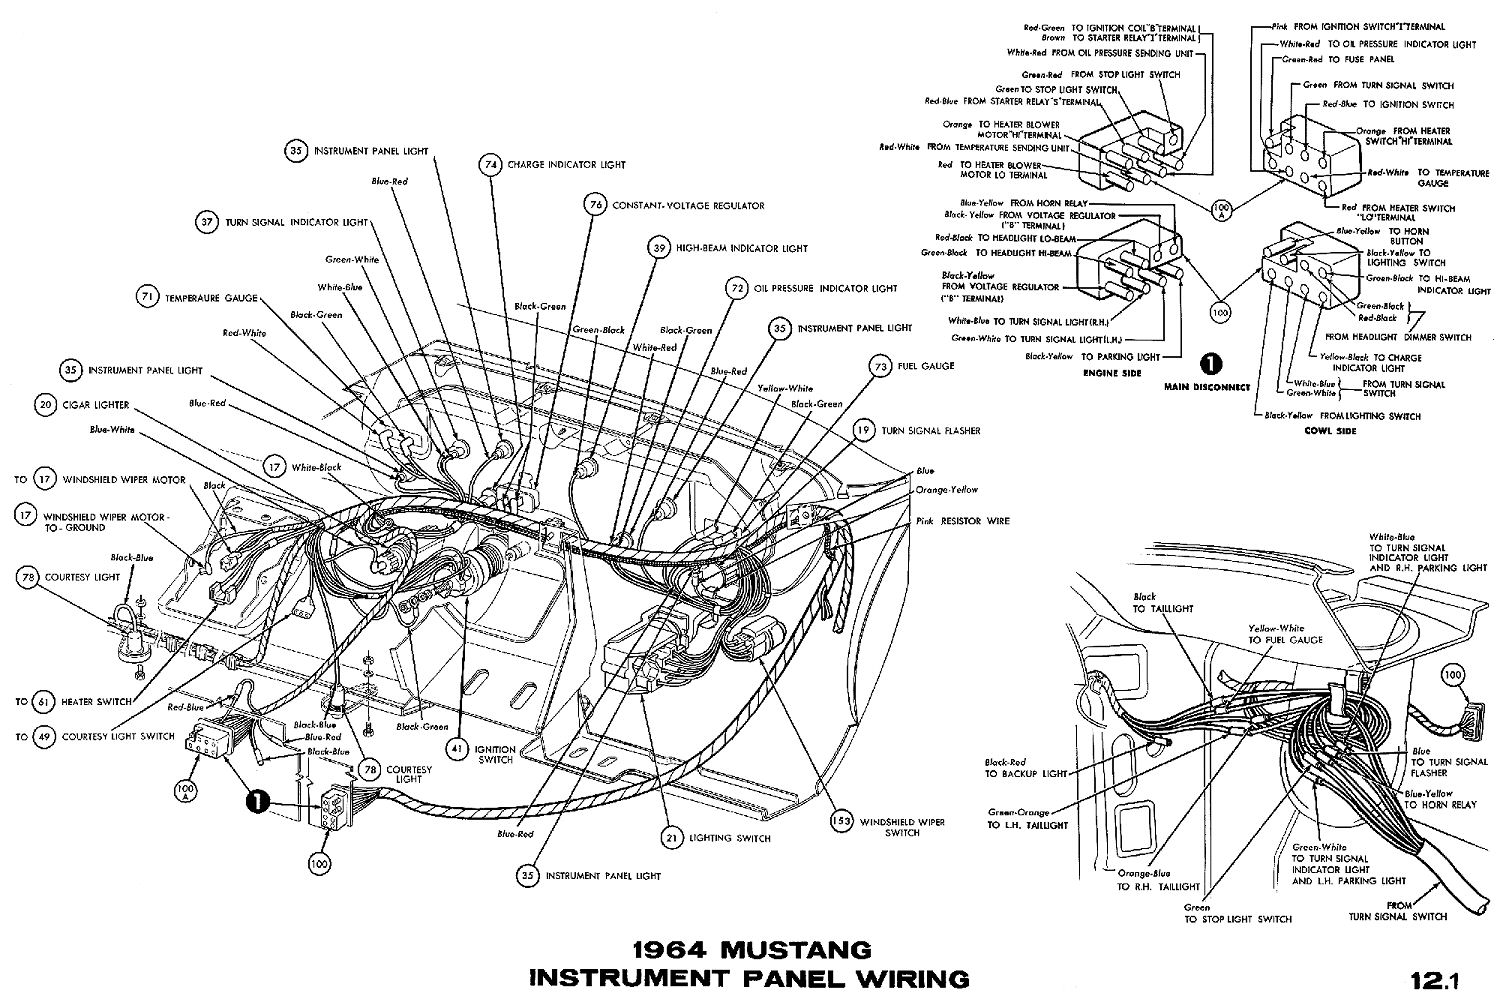 1968 Mustang Wiring Diagram Vacuum Schematics furthermore P 0996b43f8037fc36 additionally Cj5 258 Vacuum Diagram 544546 additionally 857866 Ford 360 Vacuum Diagram moreover FuelSystem. on hose vacuum line diagram